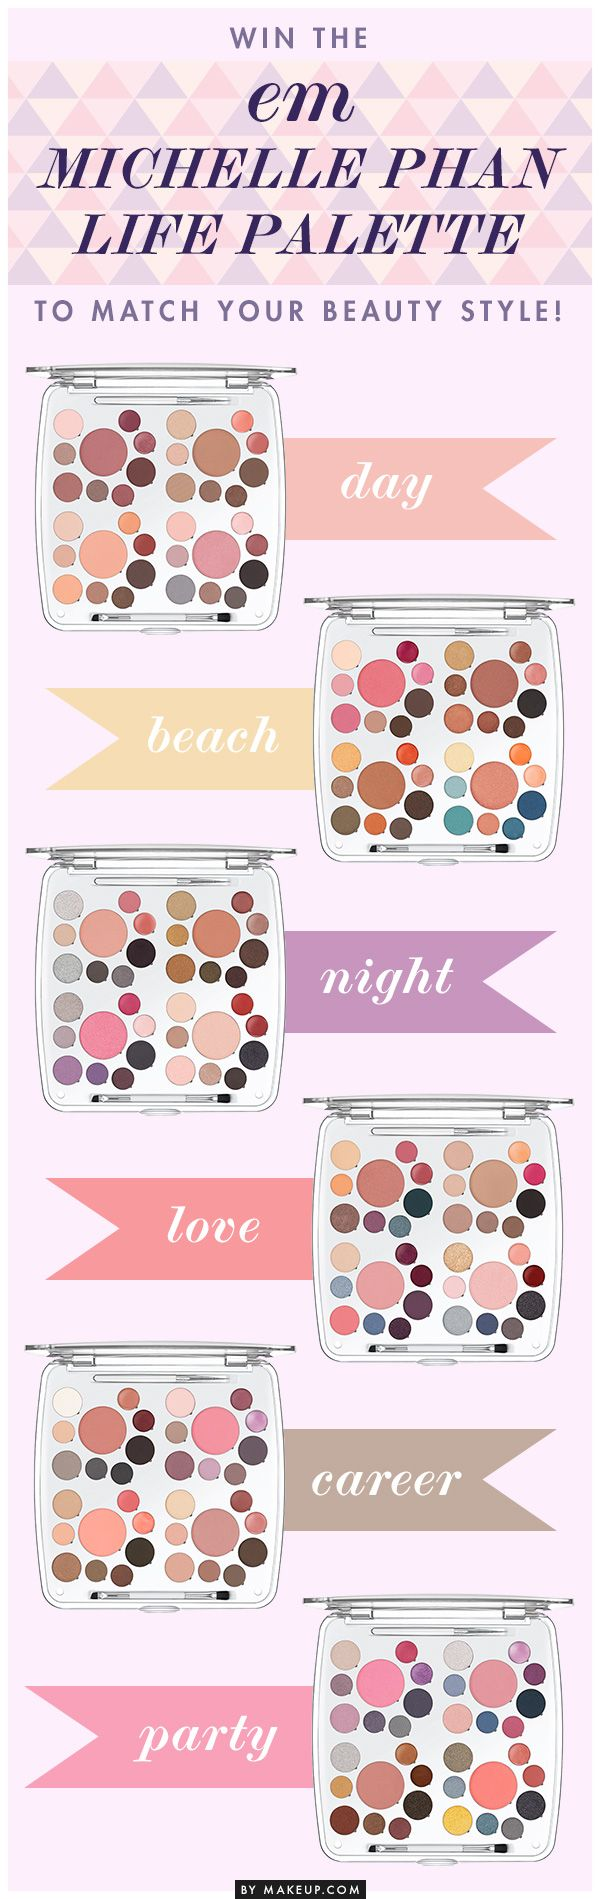 Giveaway: Win the em Michelle Phan Life Palette to Match Your Beauty Style! // click pin to enter!